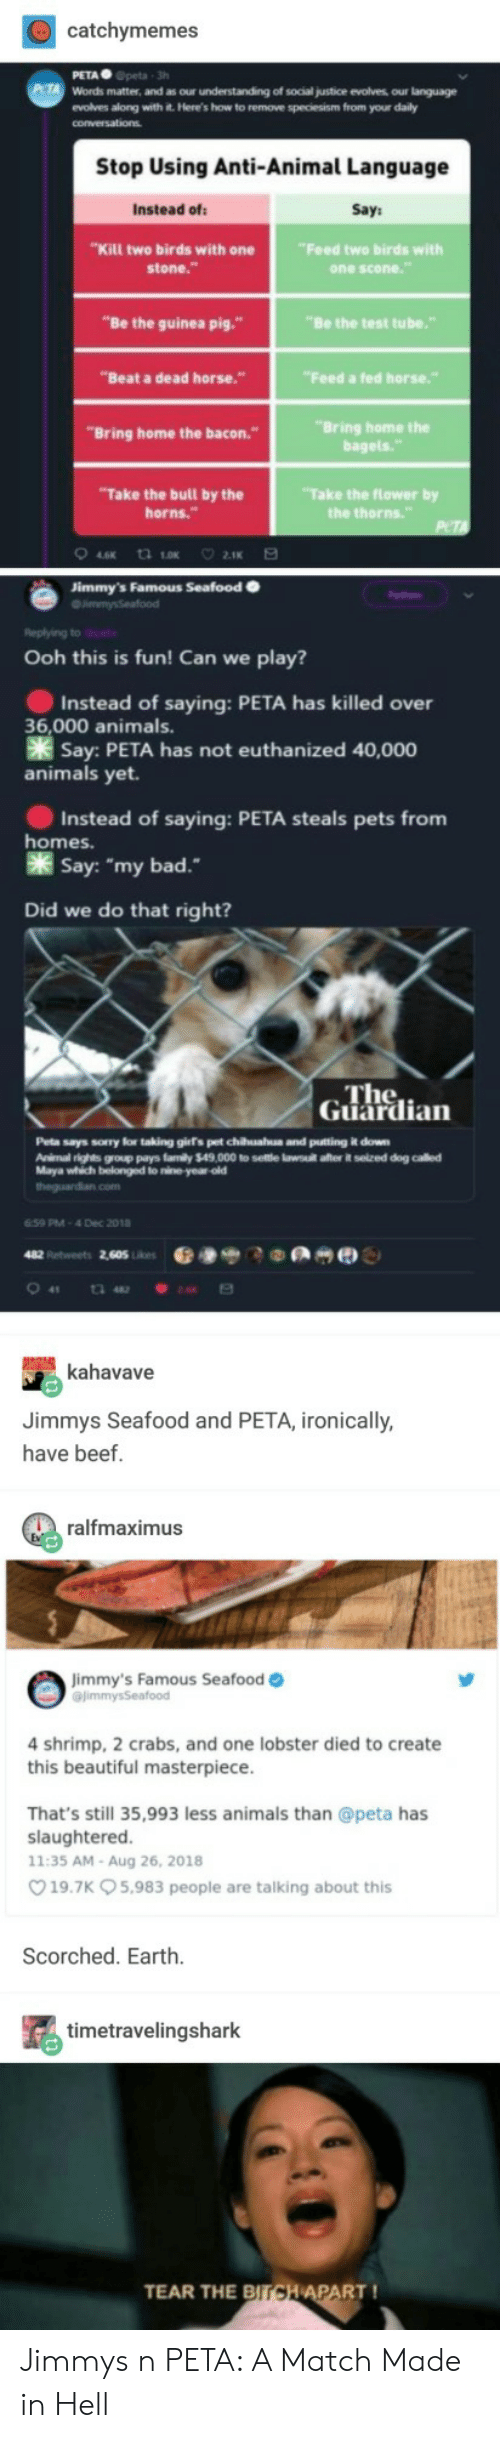 """seafood: catchymemes  PETA Gpeta 3h  Words matter, and as our understanding of social justice evolves our language  evolves along with it. Here's how to remove speciesism from your daily  Stop Using Anti-Animal Language  Instead of  Say  """"Kill two birds with one  stone.""""  Feed two birds with  one scone  """"Be the guinea pig.""""  """"Be the test tube.""""  """"Beat a dead horse.""""  Feed a fed horse.""""  """"Bring home the  bagels.  """"Bring home the bacon.  Take the bull by the  horns.""""  """"Take the flower by  Jimmy's Famous Seafood  Ooh this is fun! Can we play?  Instead of saying: PETA has killed over  Say: PETA has not euthanized 40,000  Instead of saying: PETA steals pets from  Say: """"my bad.  36,000 animals.  animals yet.  homes.  Did we do that right?  ne  Guardian  Peta says sorry lor taking girs pet chuahua and putting it down  Animal rights group pays famly $49,000 to seltle lawsutl after it selzed dog called  Maya which belonged to nine year old  theguardian.com  659 PM-4 Dec 2018  kahavave  Jimmys Seafood and PETA, ironically  have beef.  ralfmaximus  mmy's Famous Seafood o  4 shrimp, 2 crabs, and one lobster died to create  this beautiful masterpiece  That's still 35,993 less animals than @peta has  slaughtered  11:35 AM-Aug 26, 2018  19.7K 5,983 people are talking about this  Scorched. Earth  timetravelingshark  TEAR THE  PART! Jimmys n PETA: A Match Made in Hell"""